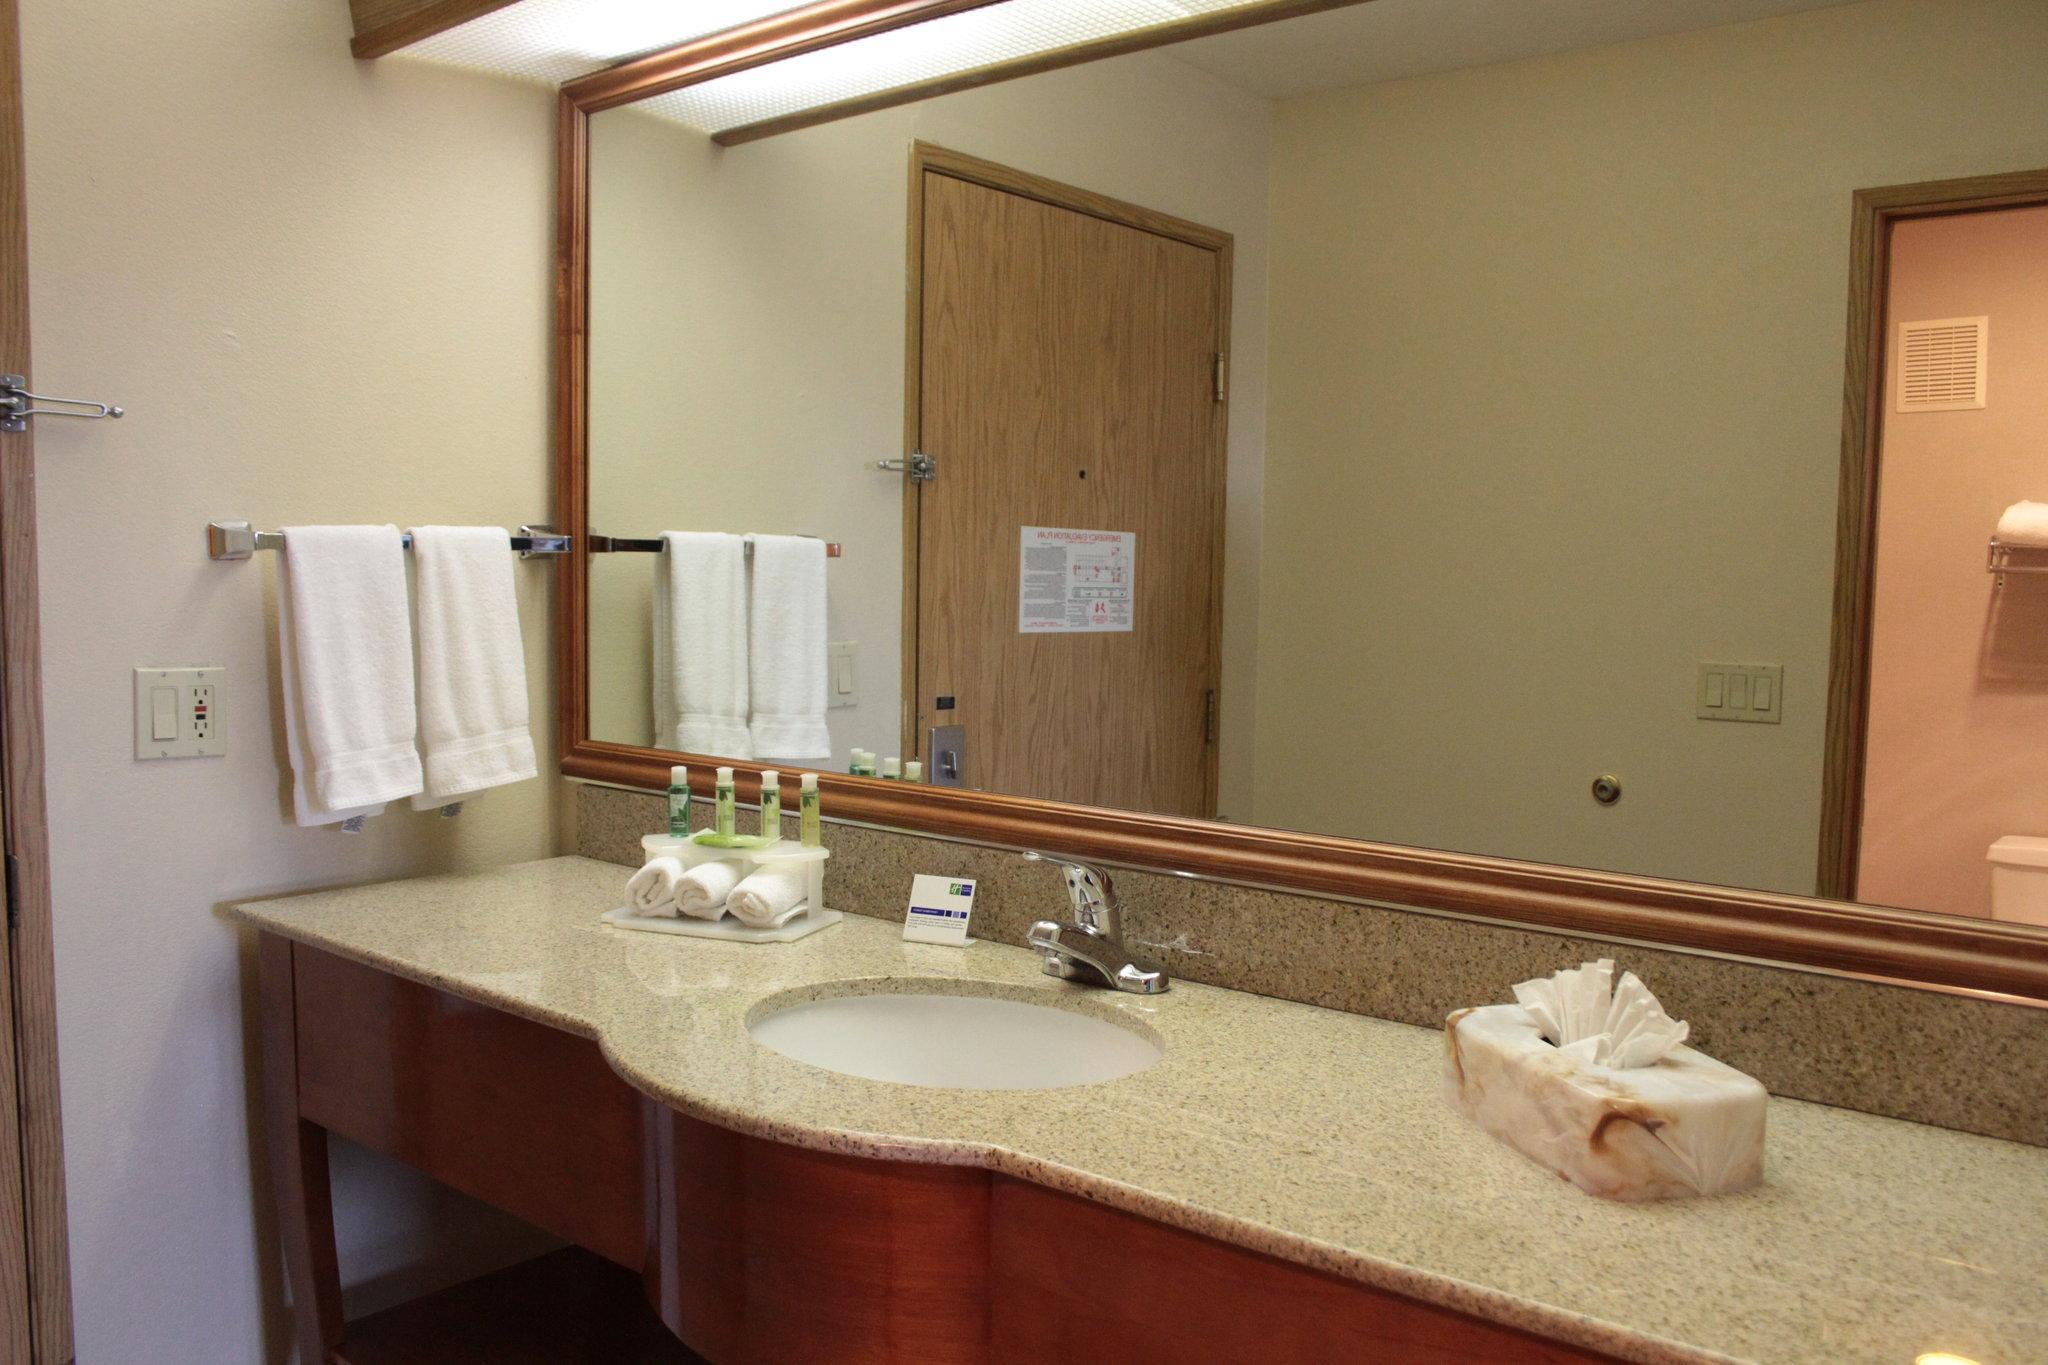 Suite 1 Bedroom Hearing Accessible Roll In Shower Non-Smoking